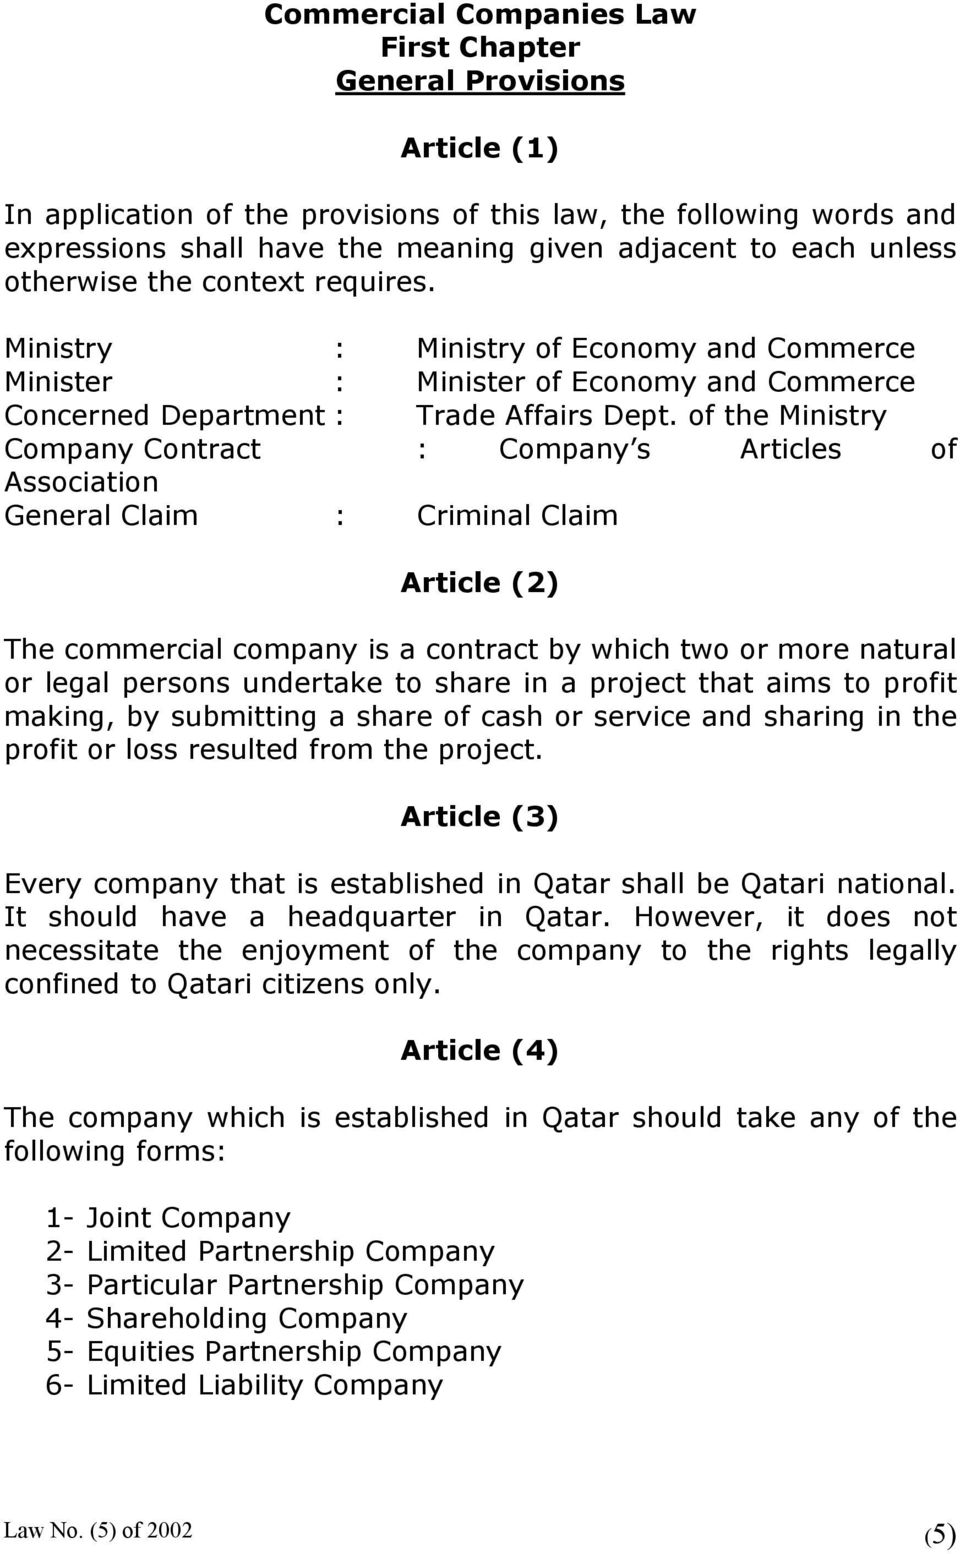 of the Ministry Company Contract : Company s Articles of Association General Claim : Criminal Claim Article (2) The commercial company is a contract by which two or more natural or legal persons